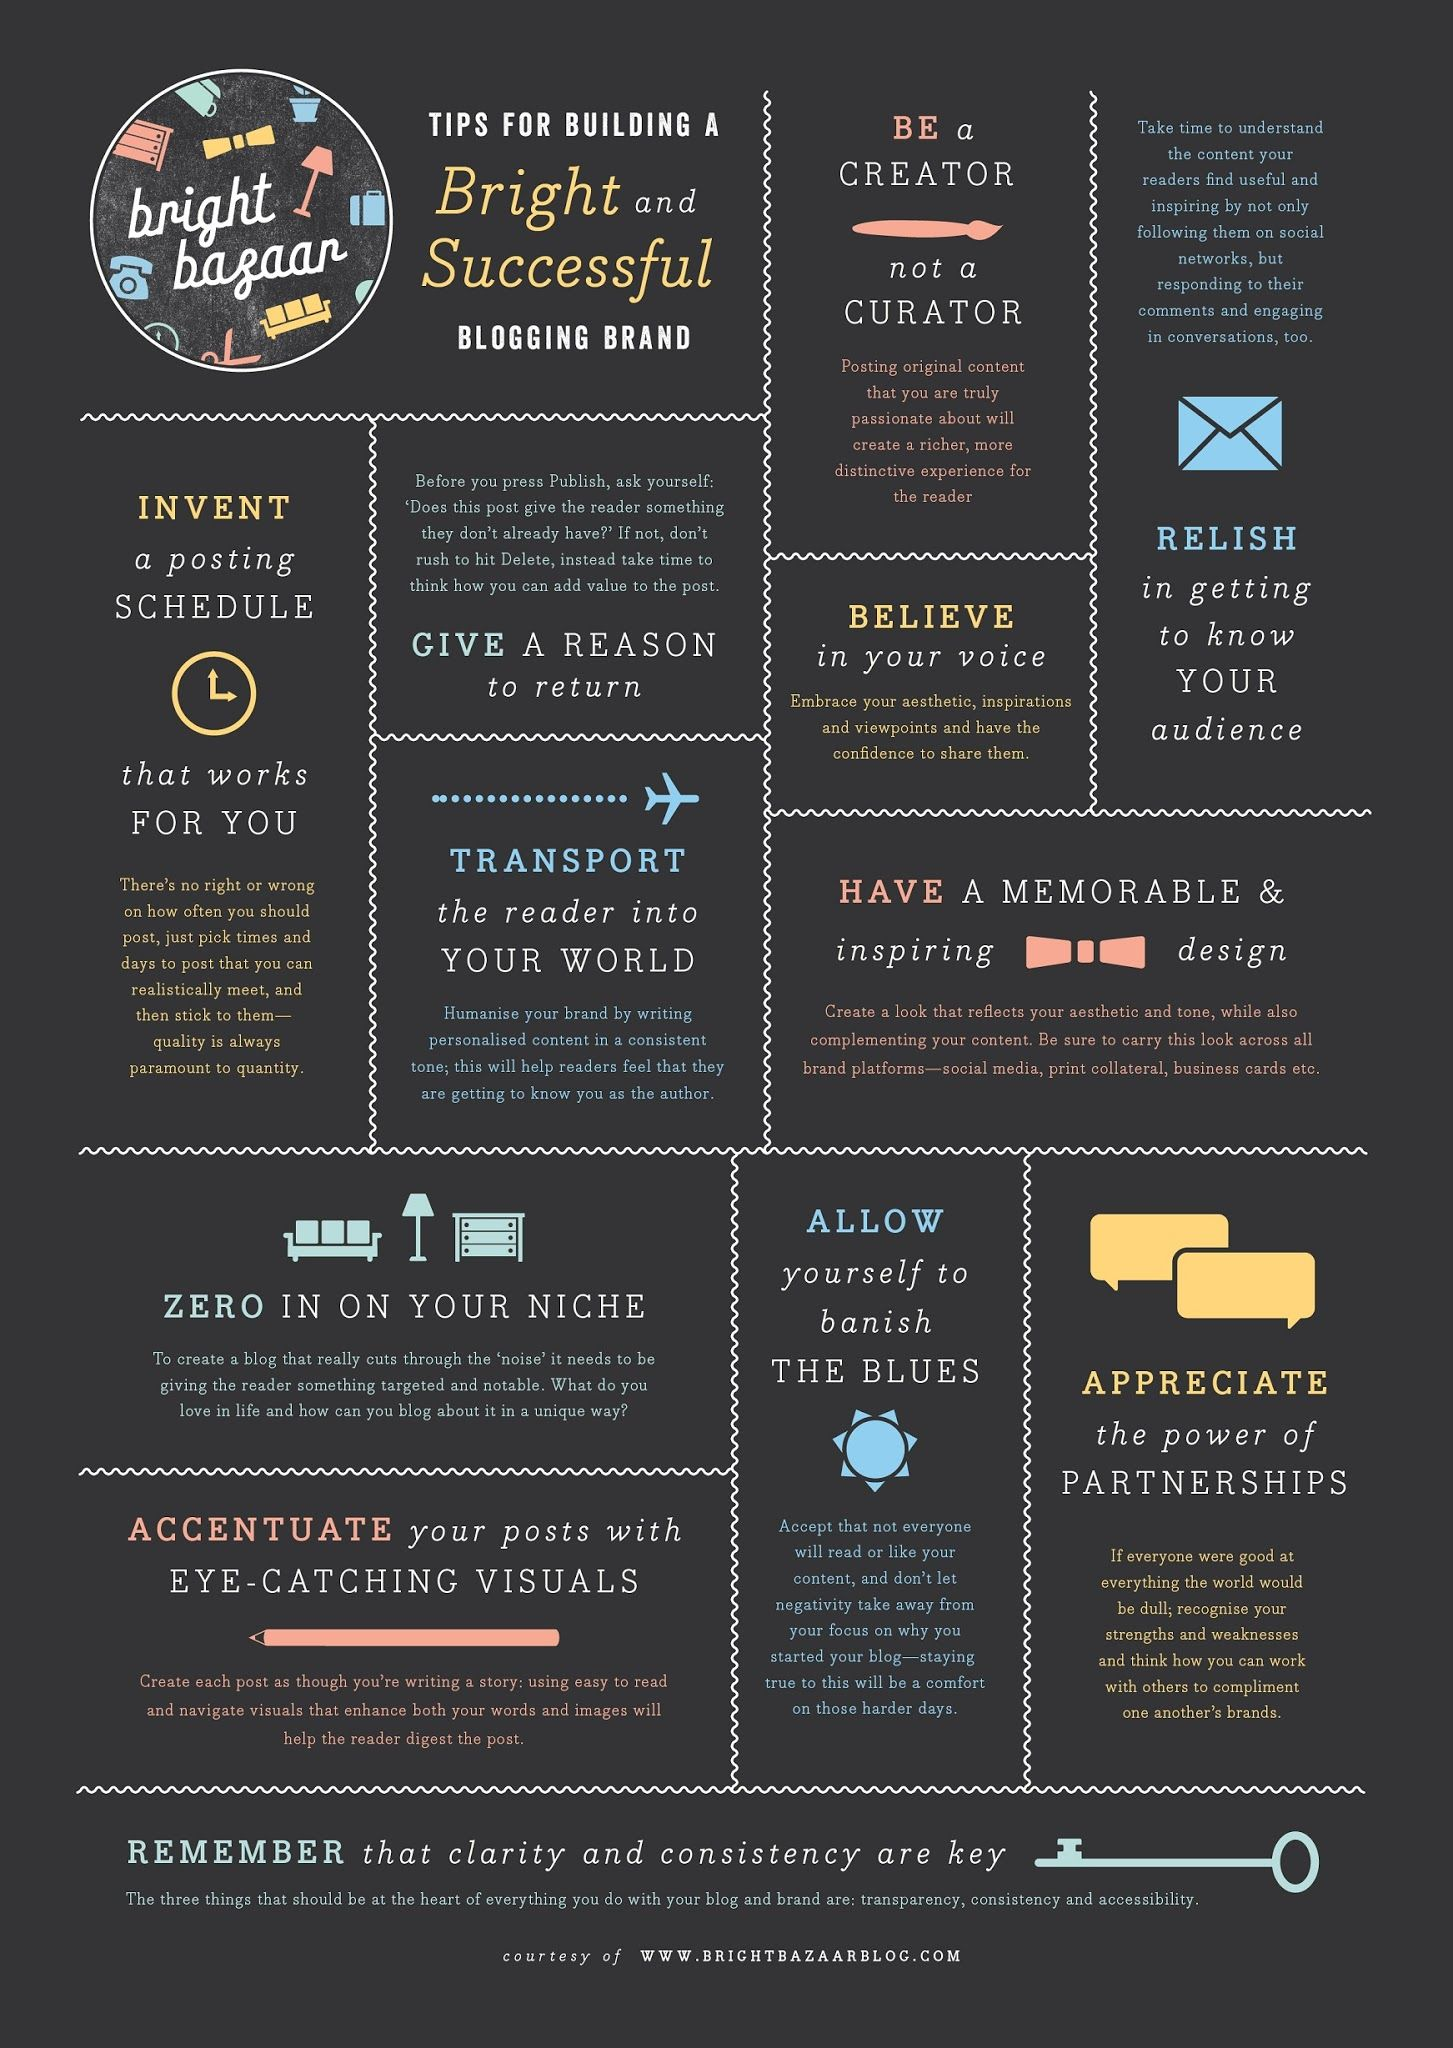 Tips For Building A Bright And Successful Blogging Brand [INFOGRAPHIC] digitalinformationworld.com